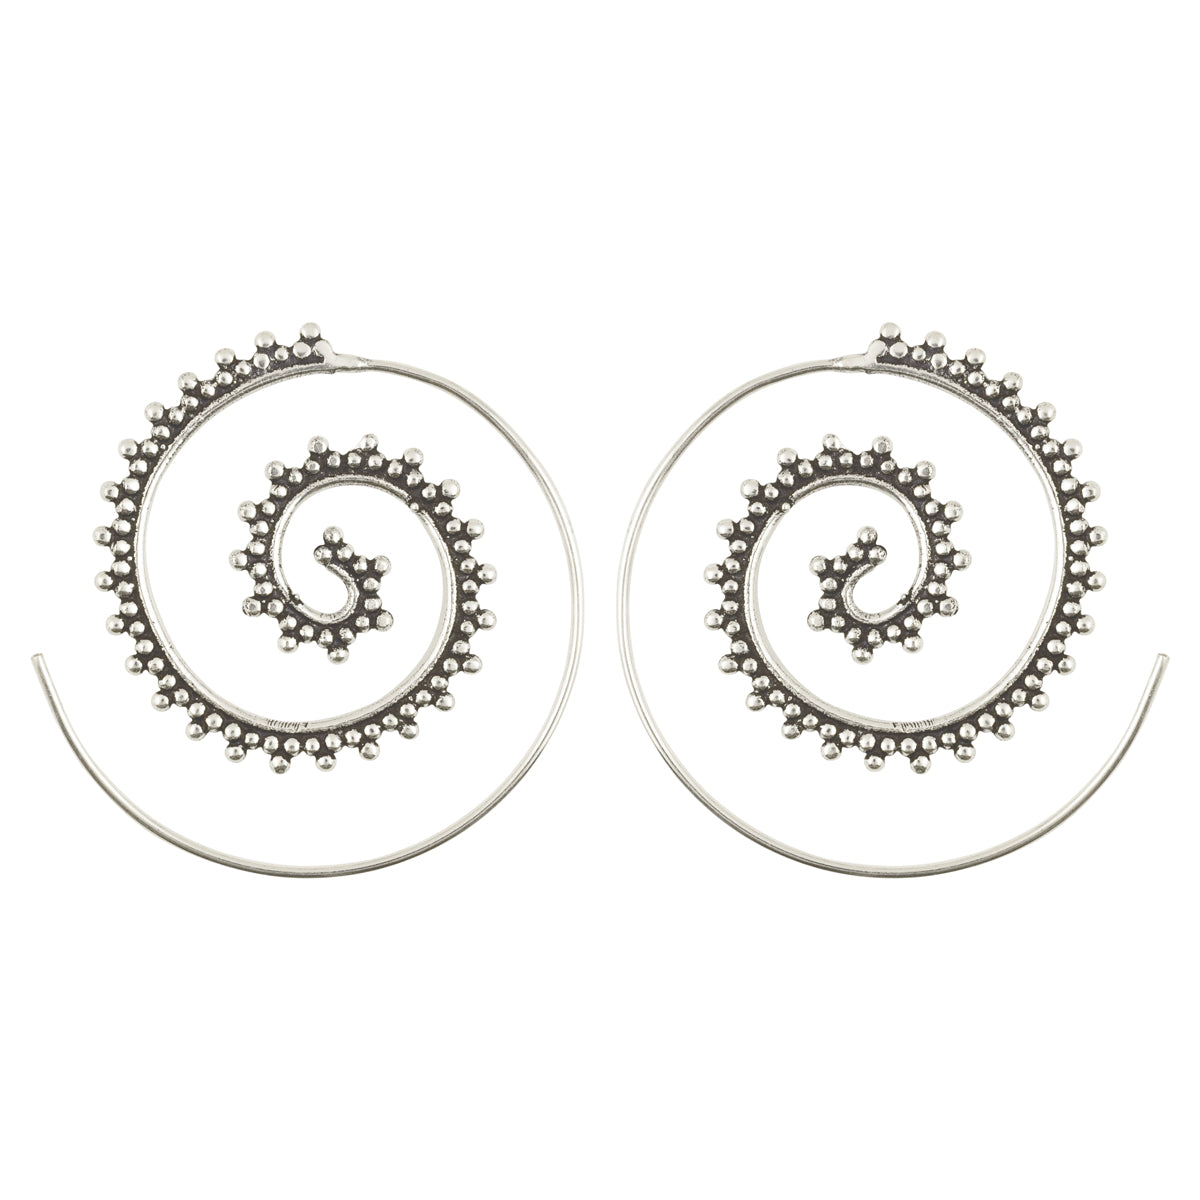 Simple-Brass Granular Dotted Spiral Earrings-Antique Silver-One Pair